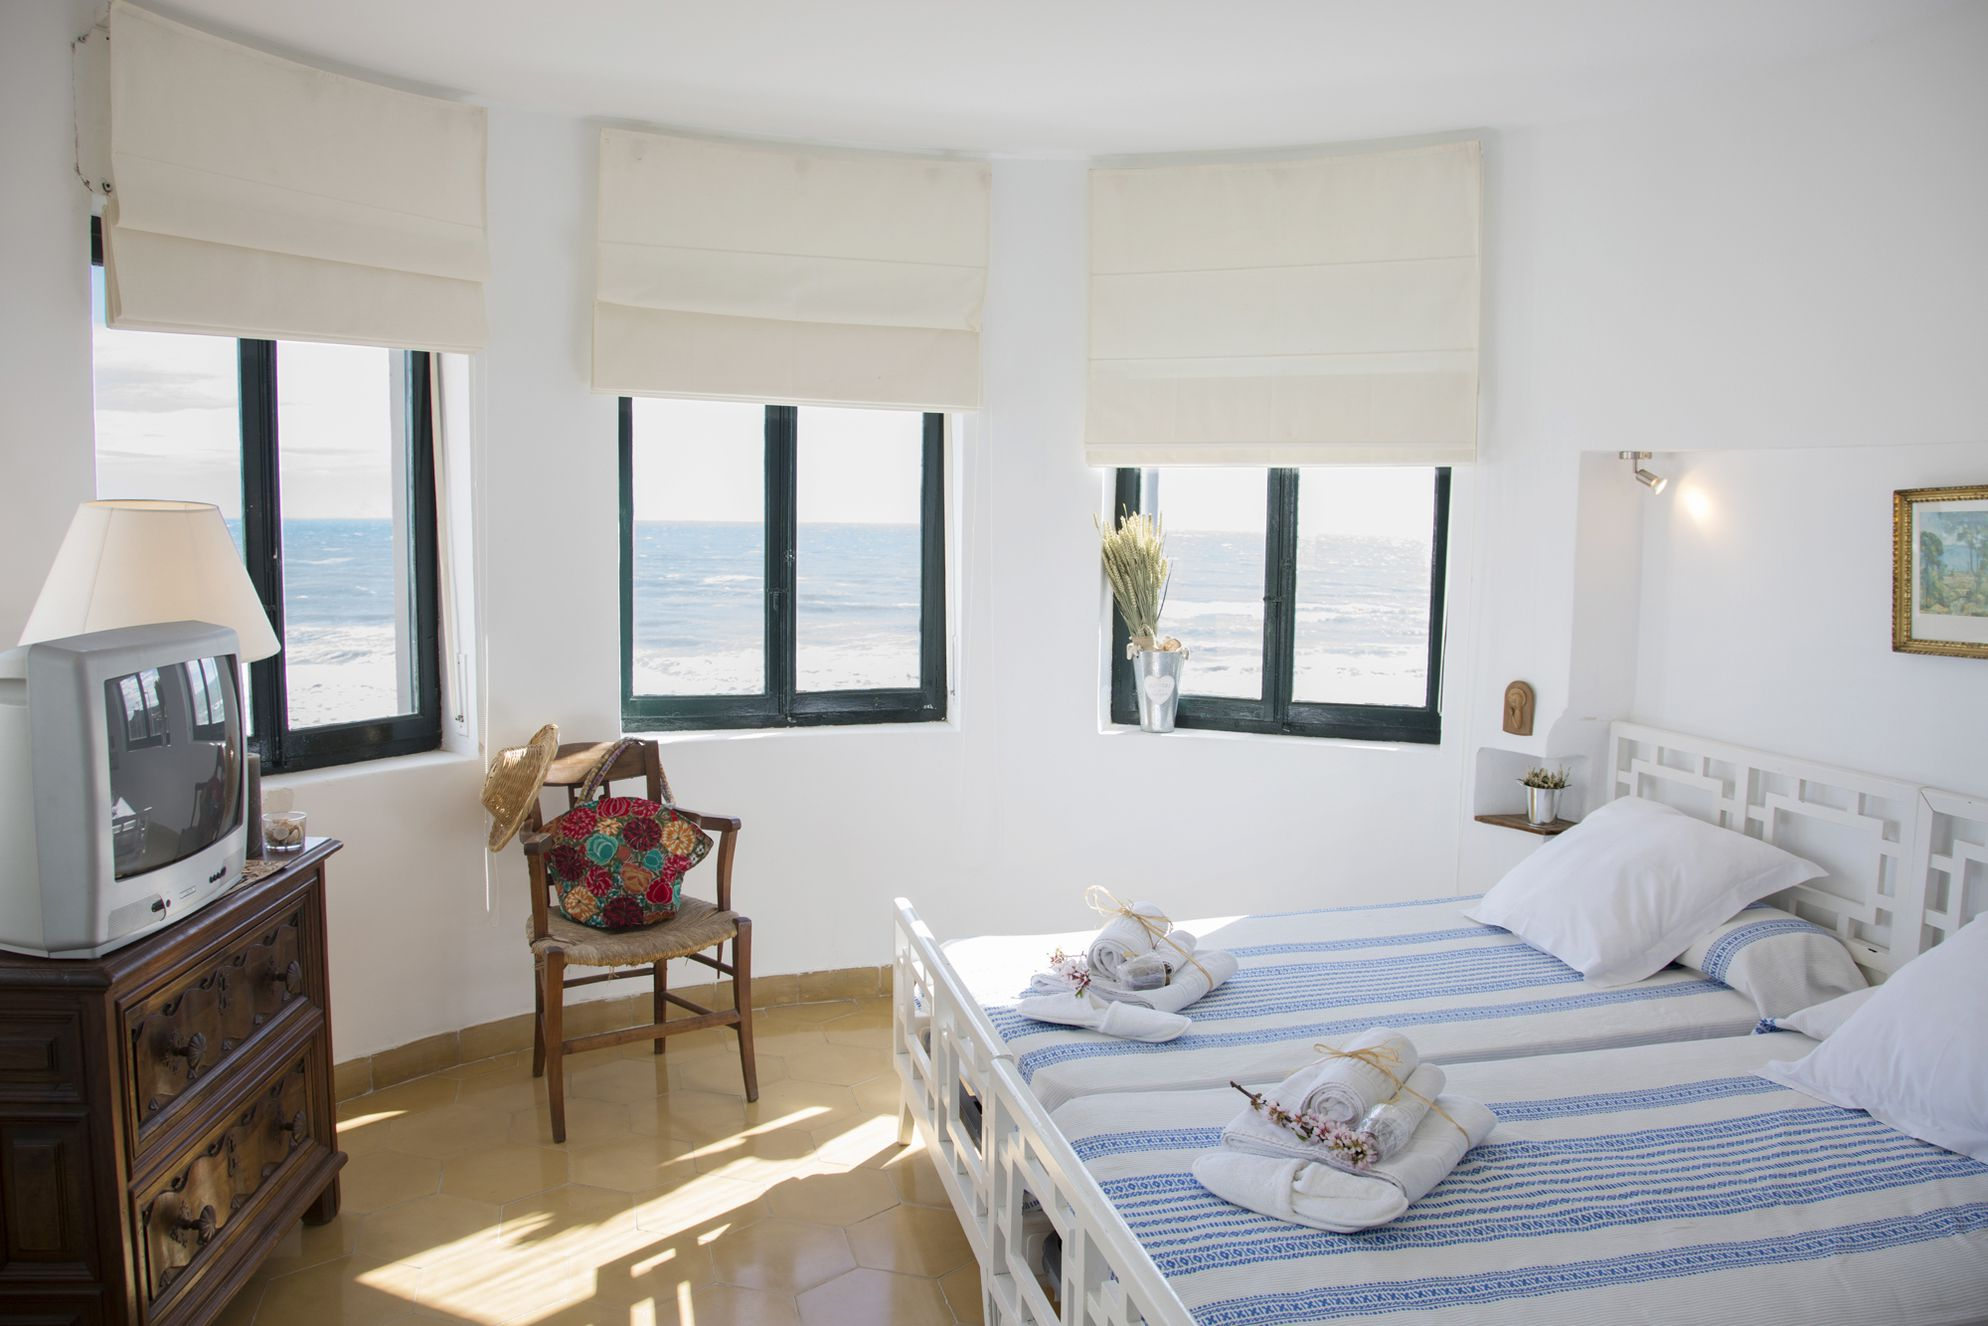 Bedroom inside of Villa Socarrat with windows that look out on the sea of Valencia